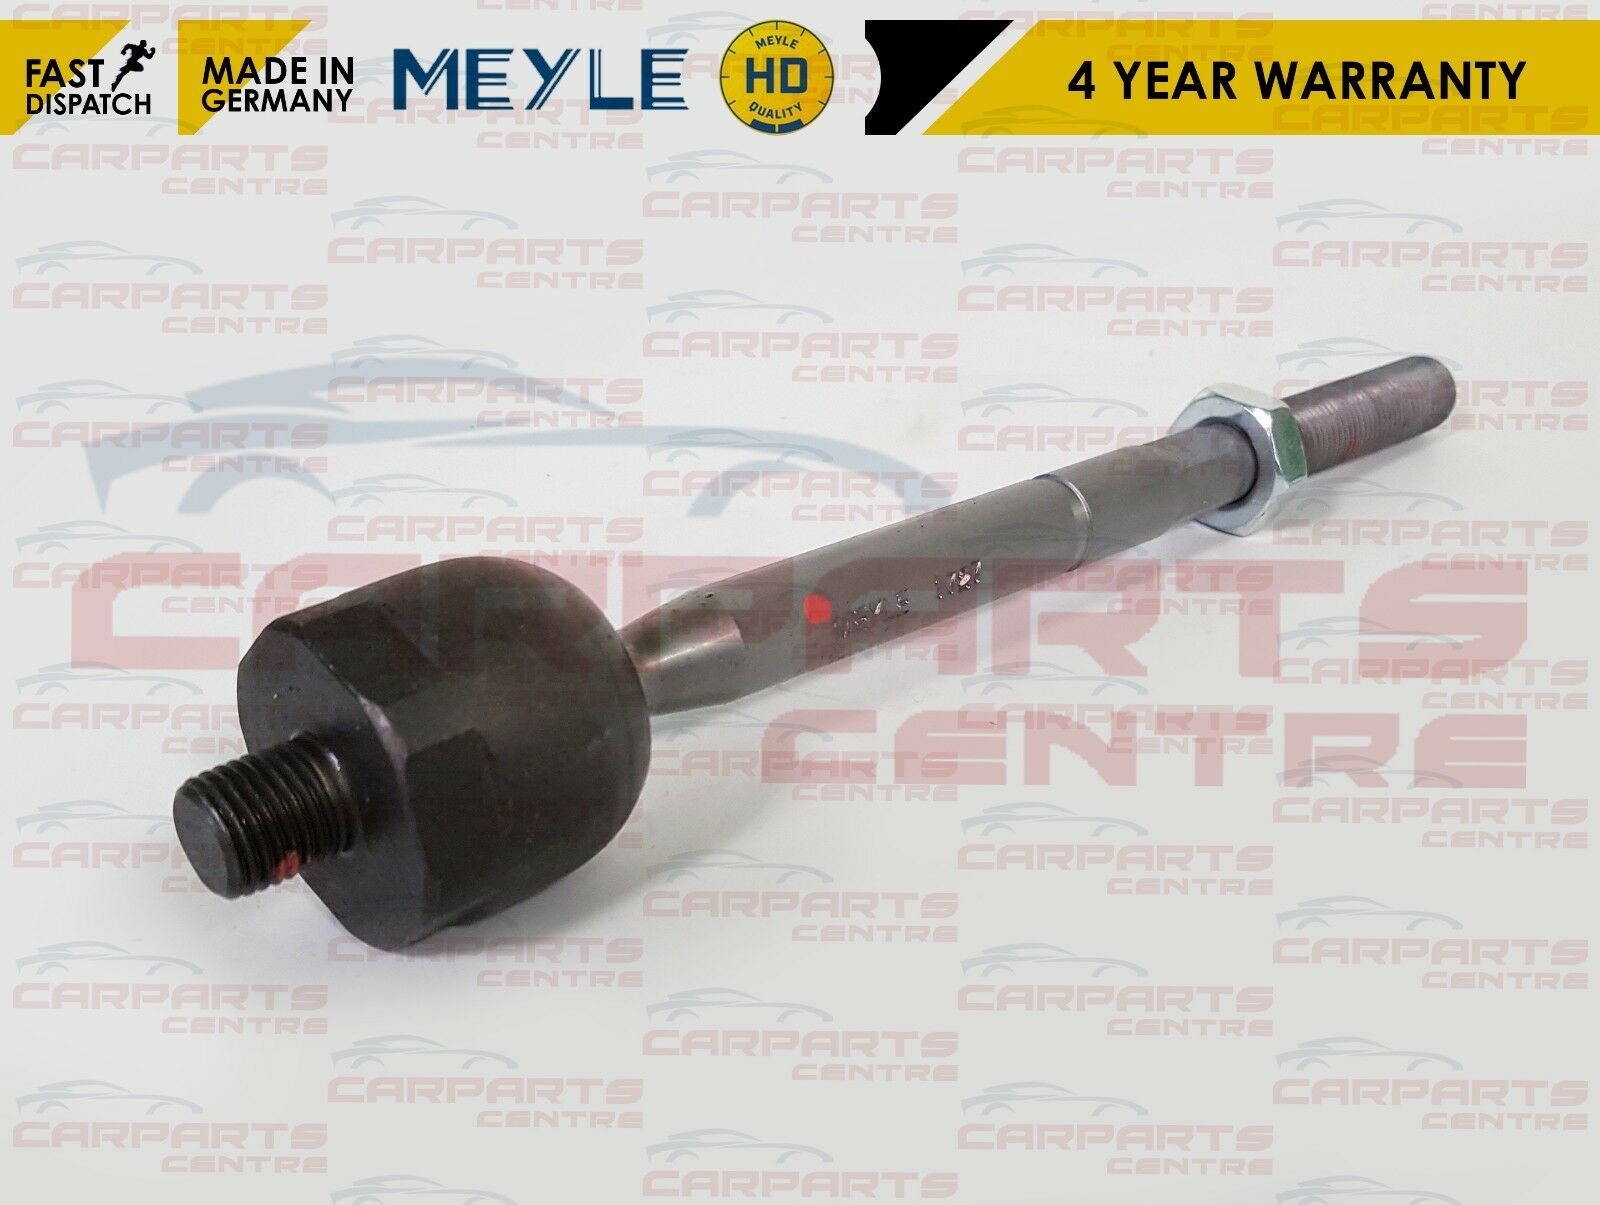 FRONT AXLE INNER TRACK TIE ROD FOR BMW 2 SERIES X1 MINI COUNTRYMAN CLUBMAN 2014